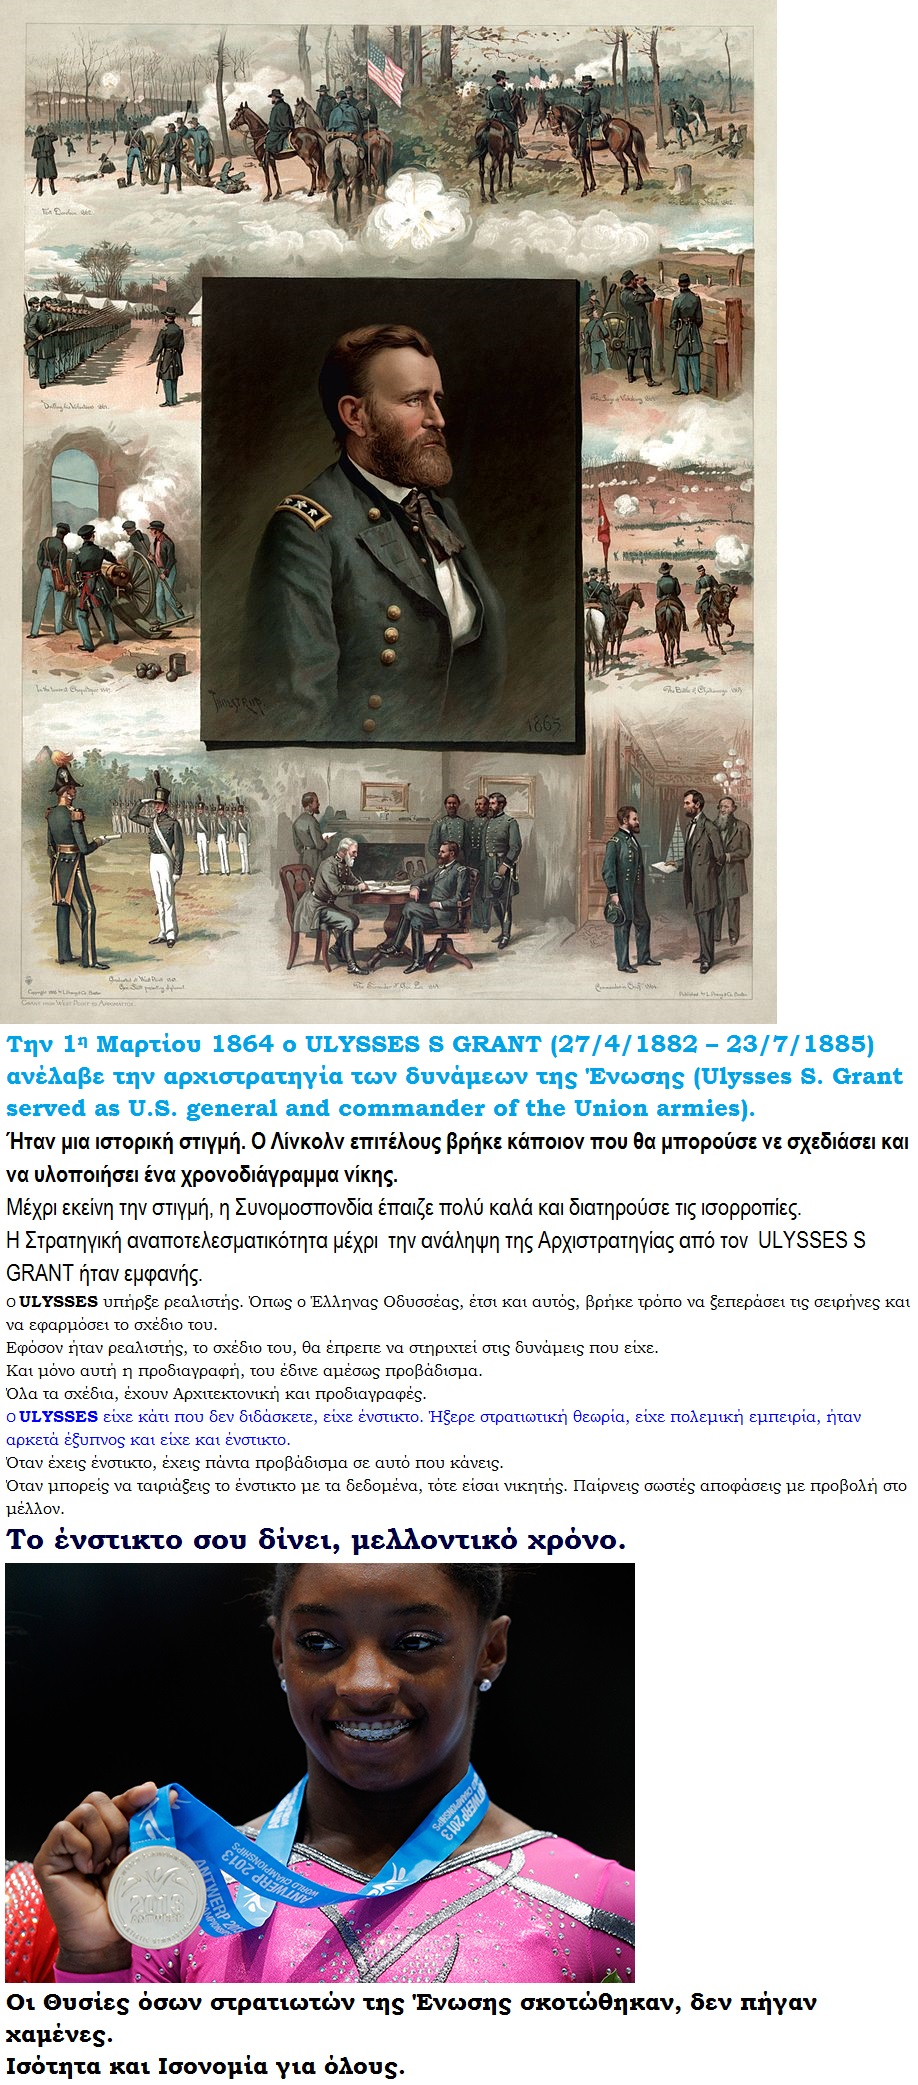 USA GRANT Ulysses S. Grant from West Point to Appomattox 02 02 031213